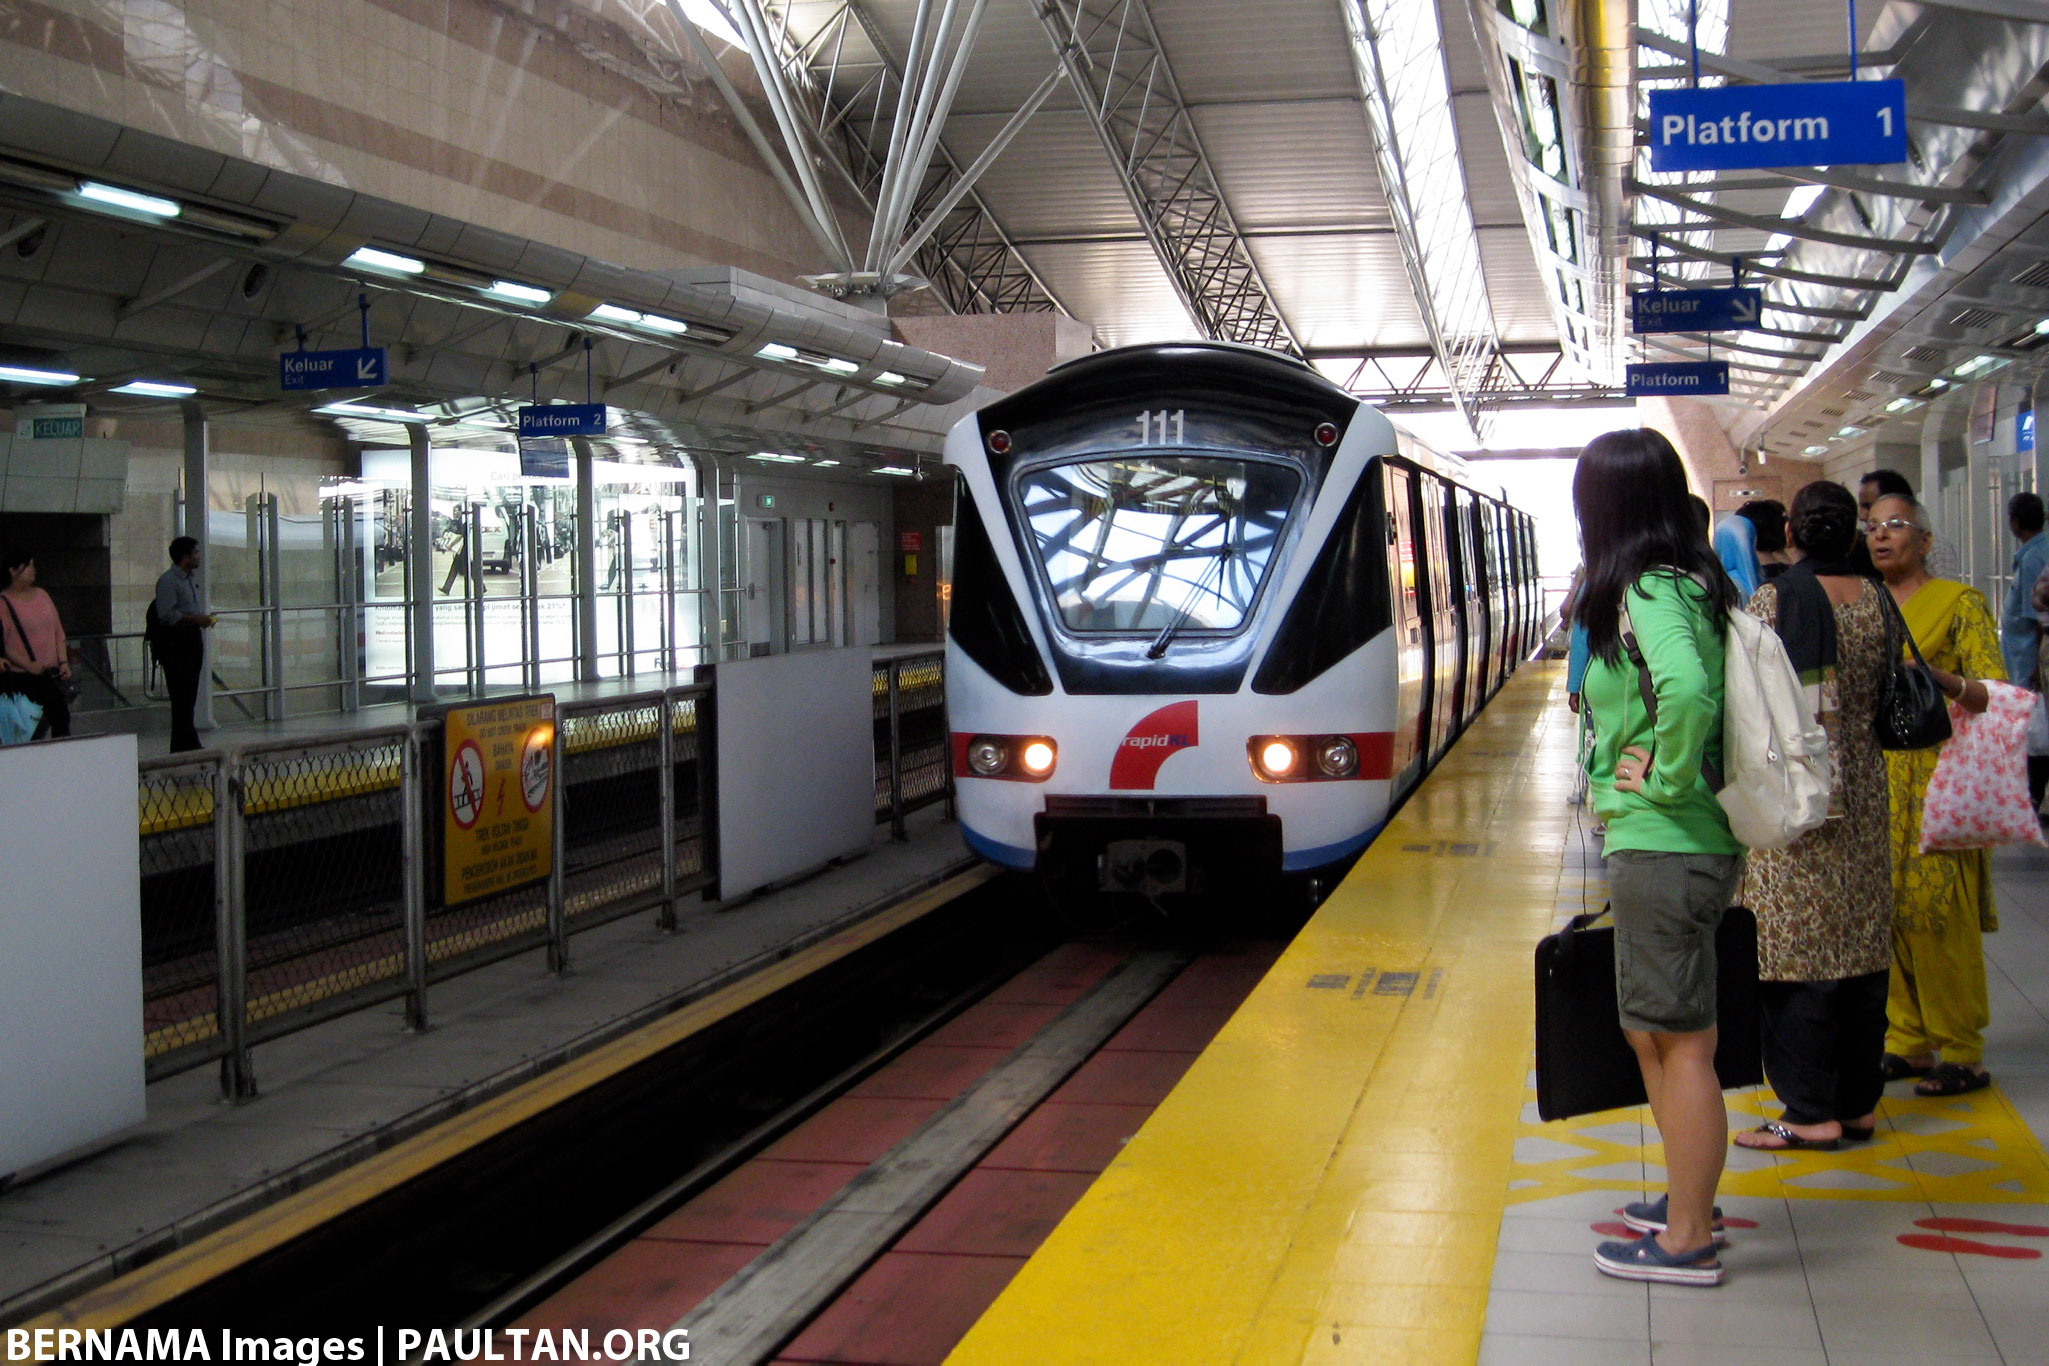 Review Train Fares To Account For Rising Maintenance Costs